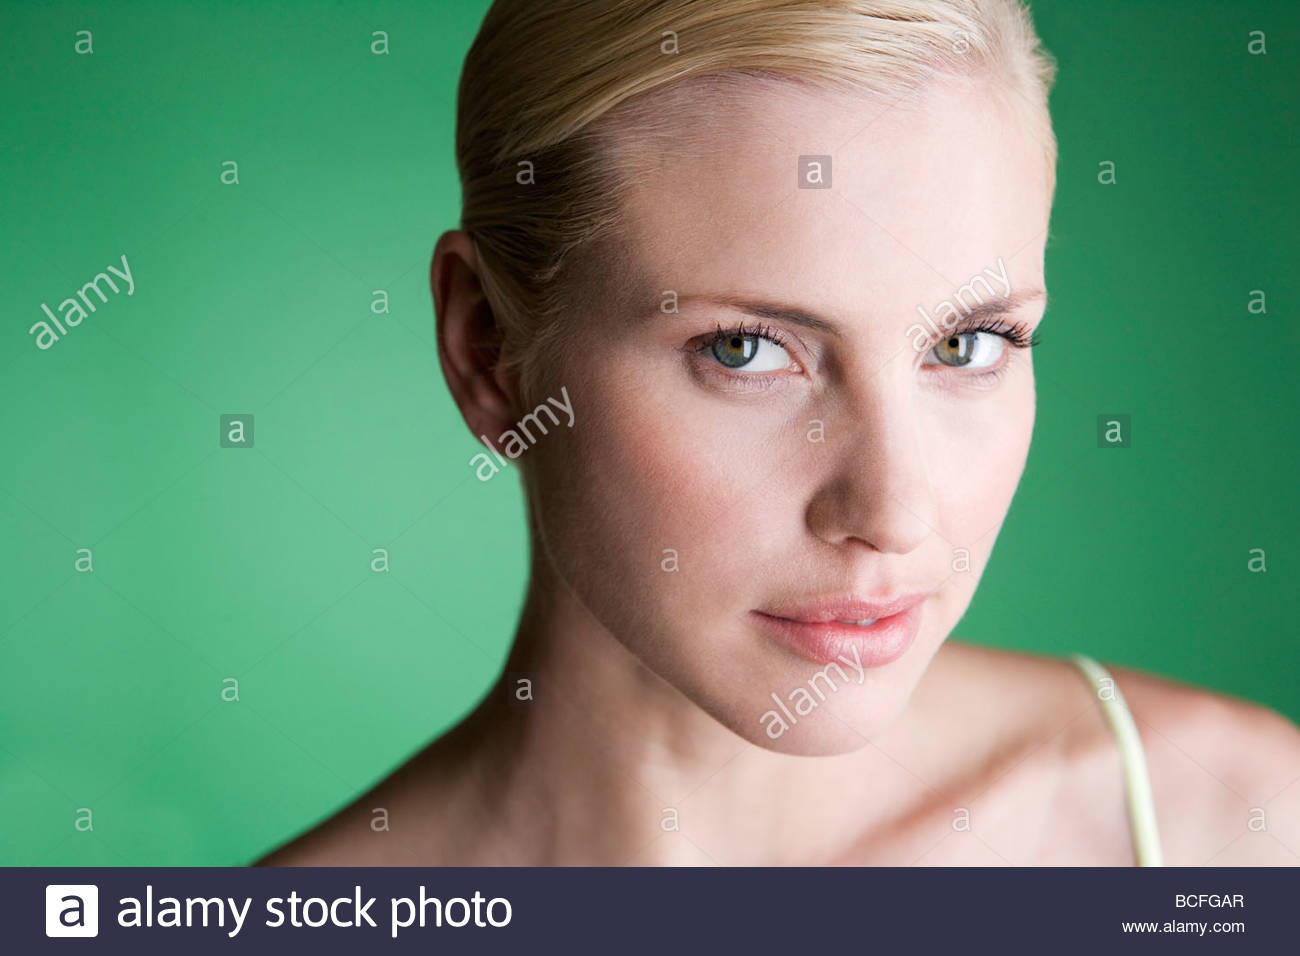 A portrait of a young blonde woman - Stock Image